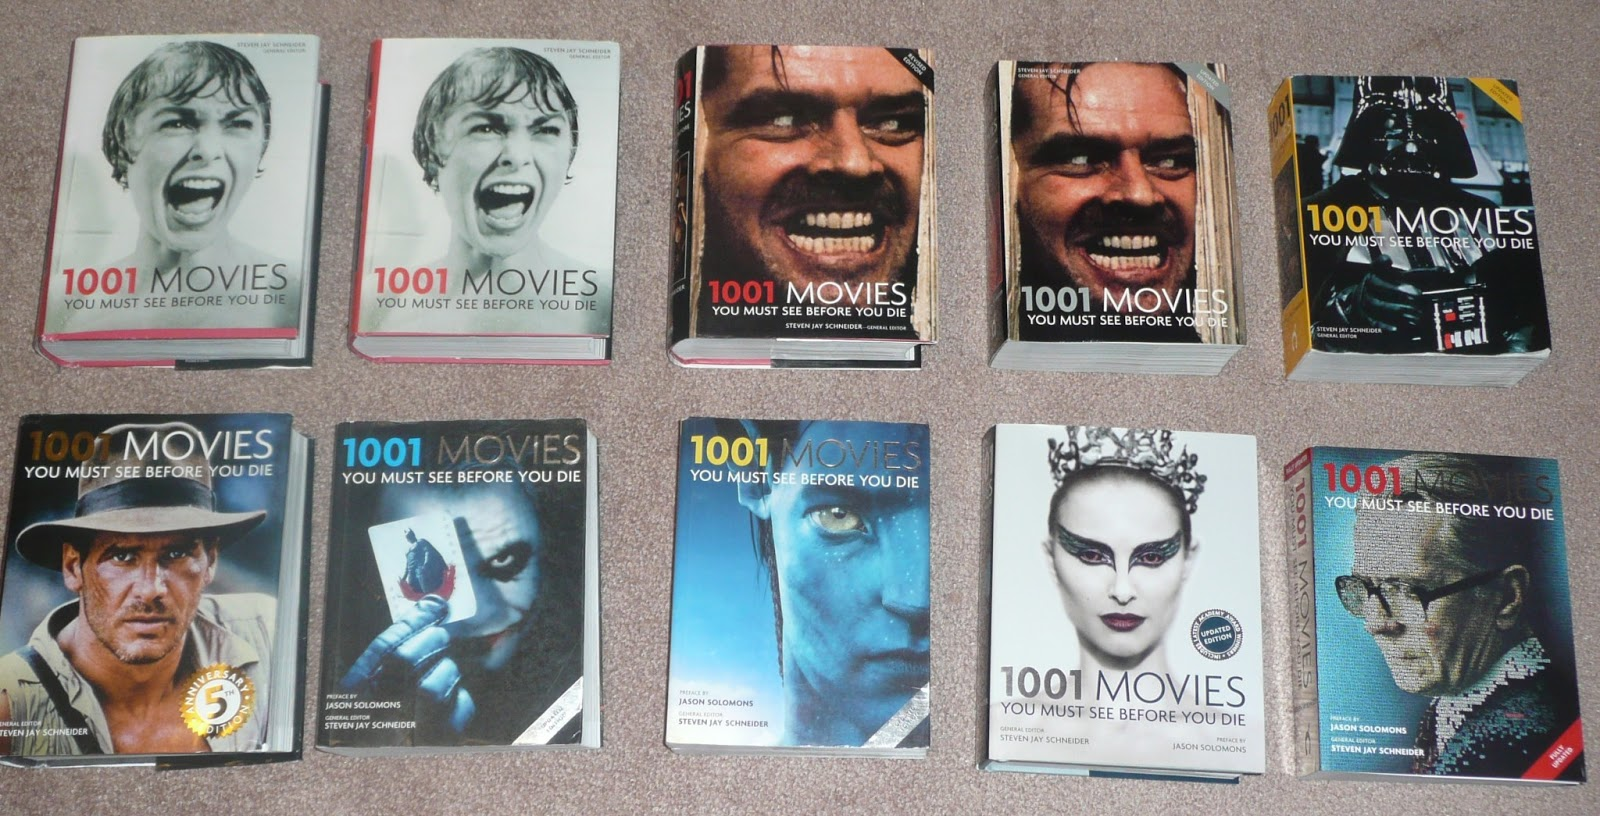 Created a Books section on the 1,001 Movies wiki to present this  information.